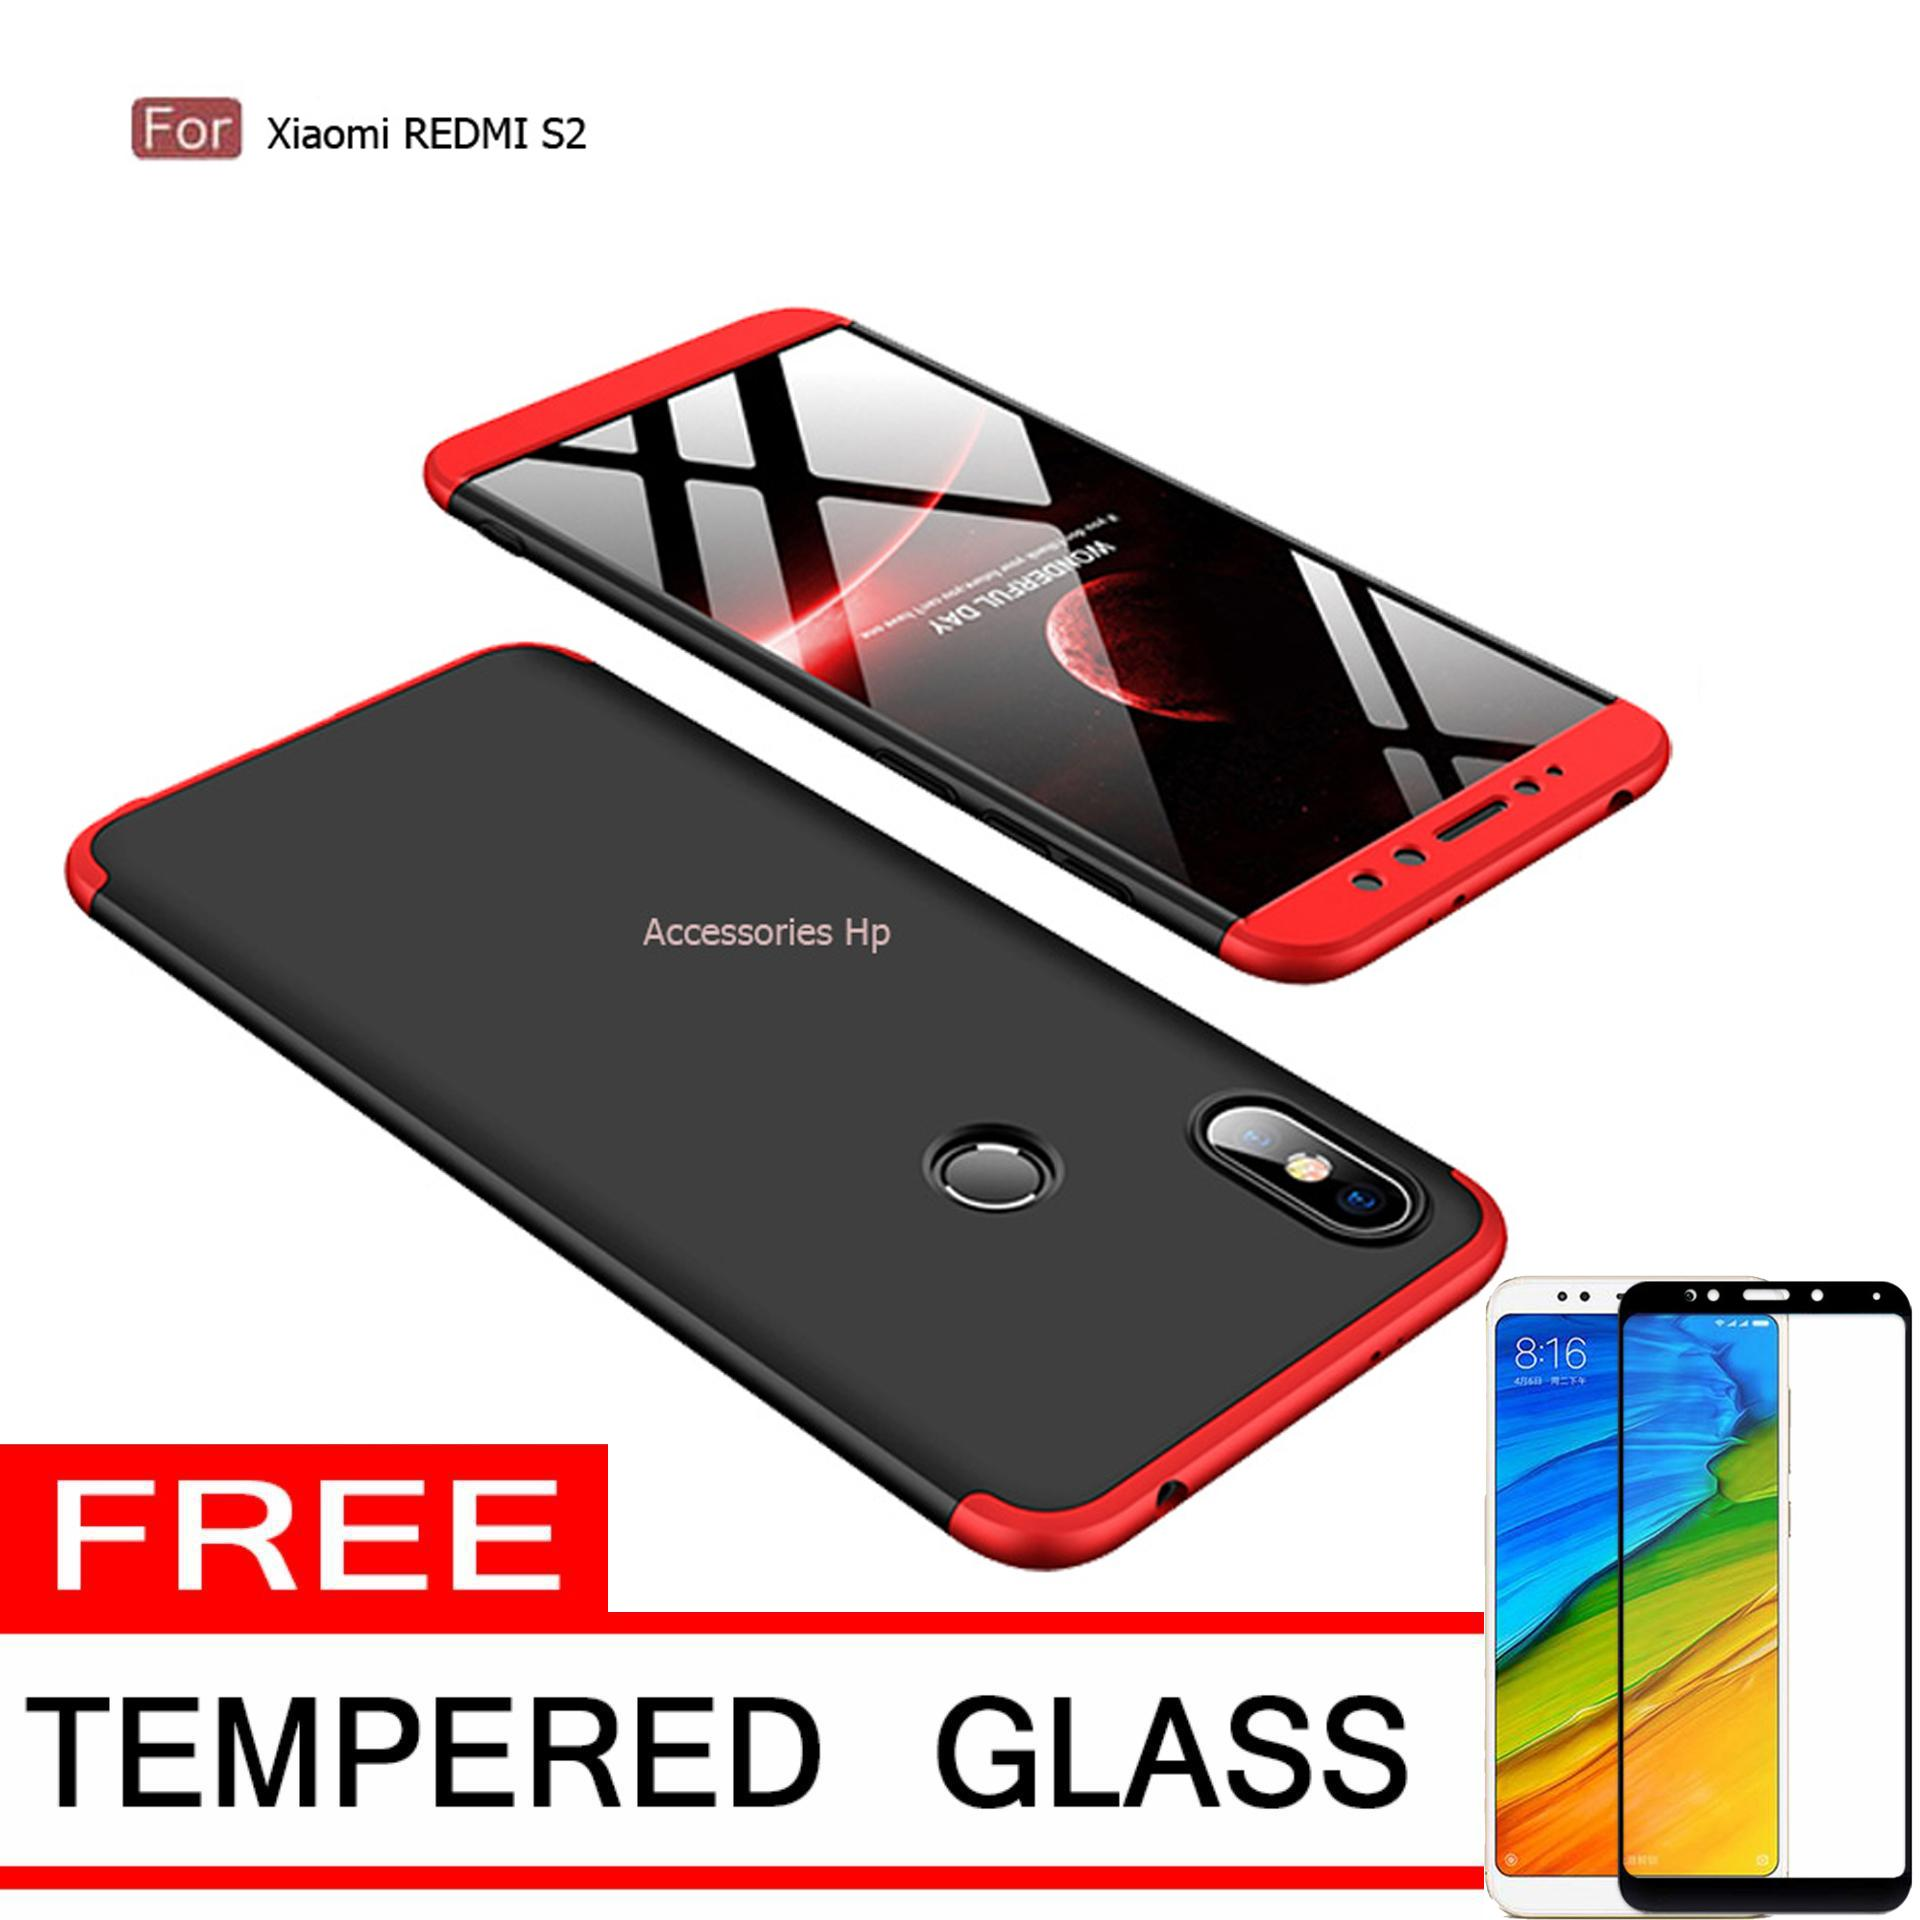 Accessories Hp CASE GKK Hardcase 360 Full Protective for Xiaomi Redmi S2 + Free Tempered Glass Warna Black